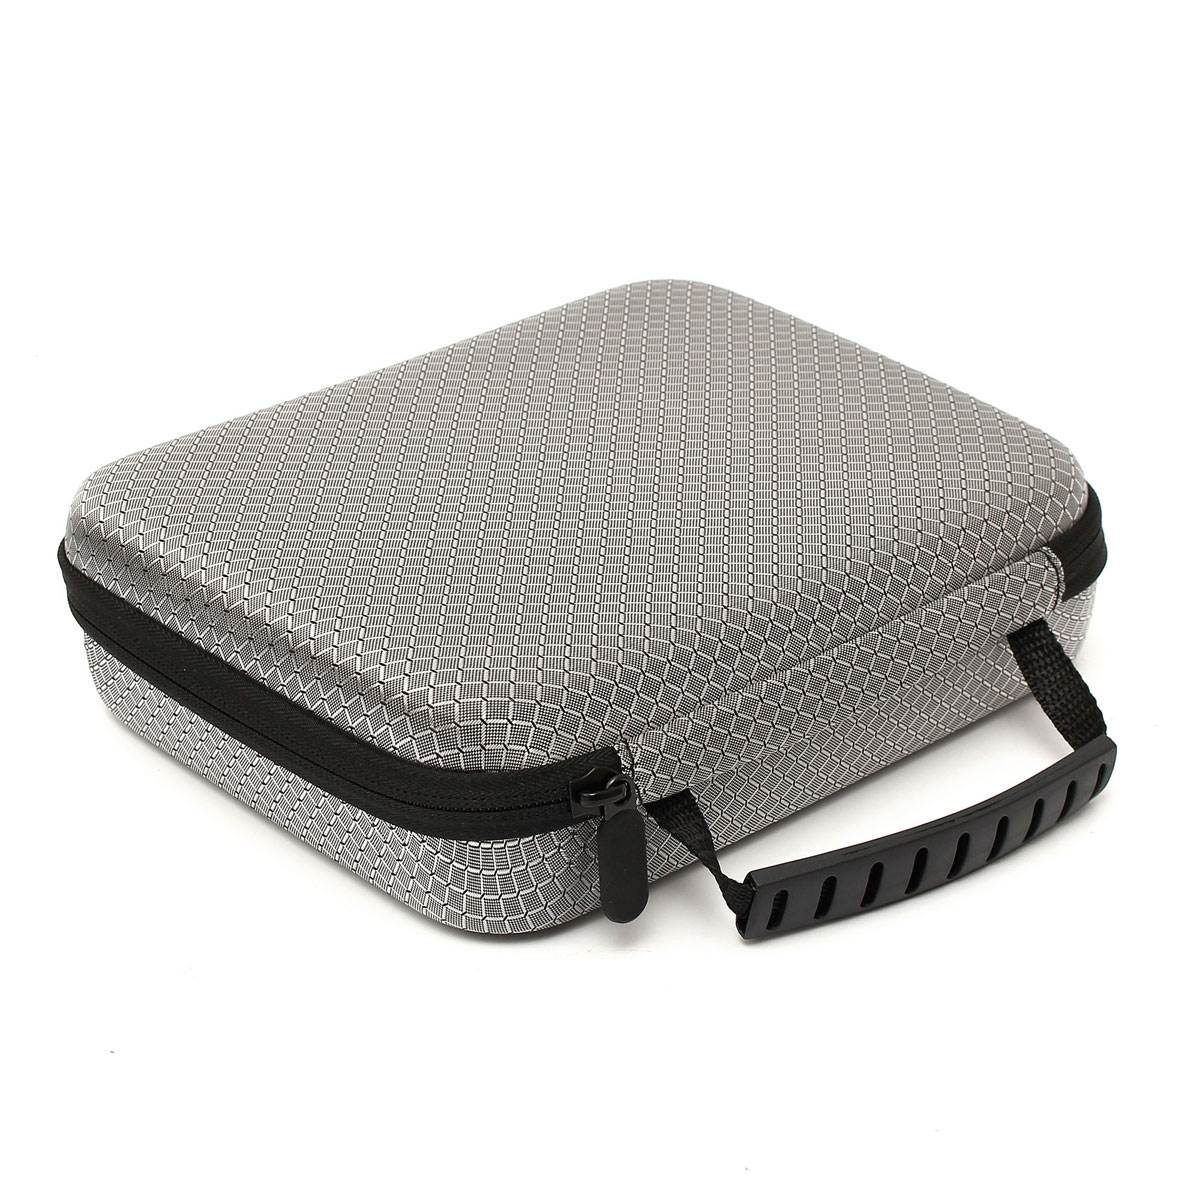 New Durable Fashion Portable Silver EVA Travel Bag Cases Covers For BOSE MINI Bluetooth Speaker Pouch